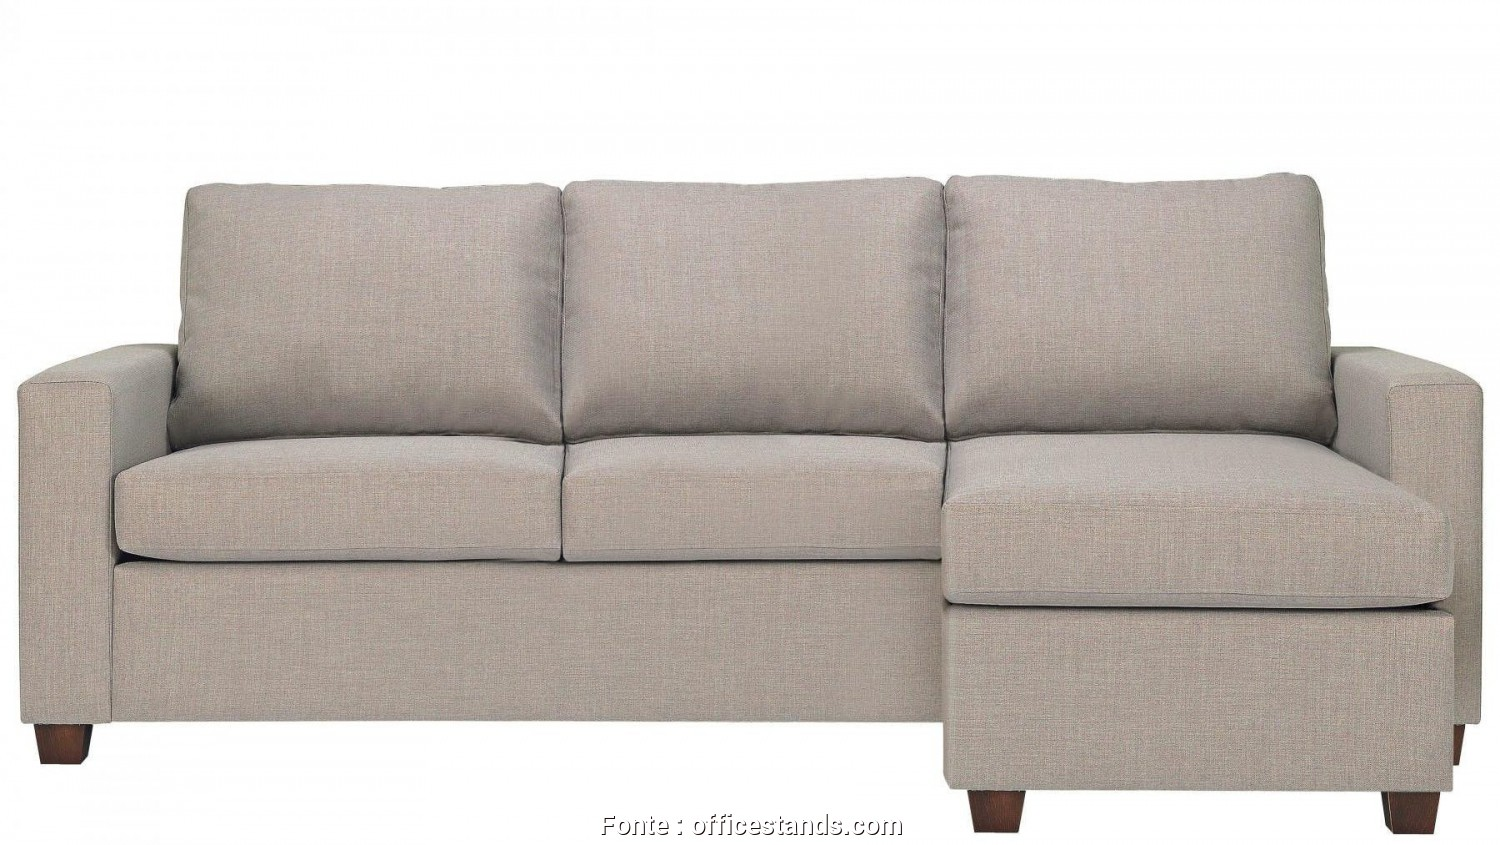 Ikea Kanapa Vilasund, Affascinante Chaise Sofa, Ikea Vilasund, Backabro Review Return Relating